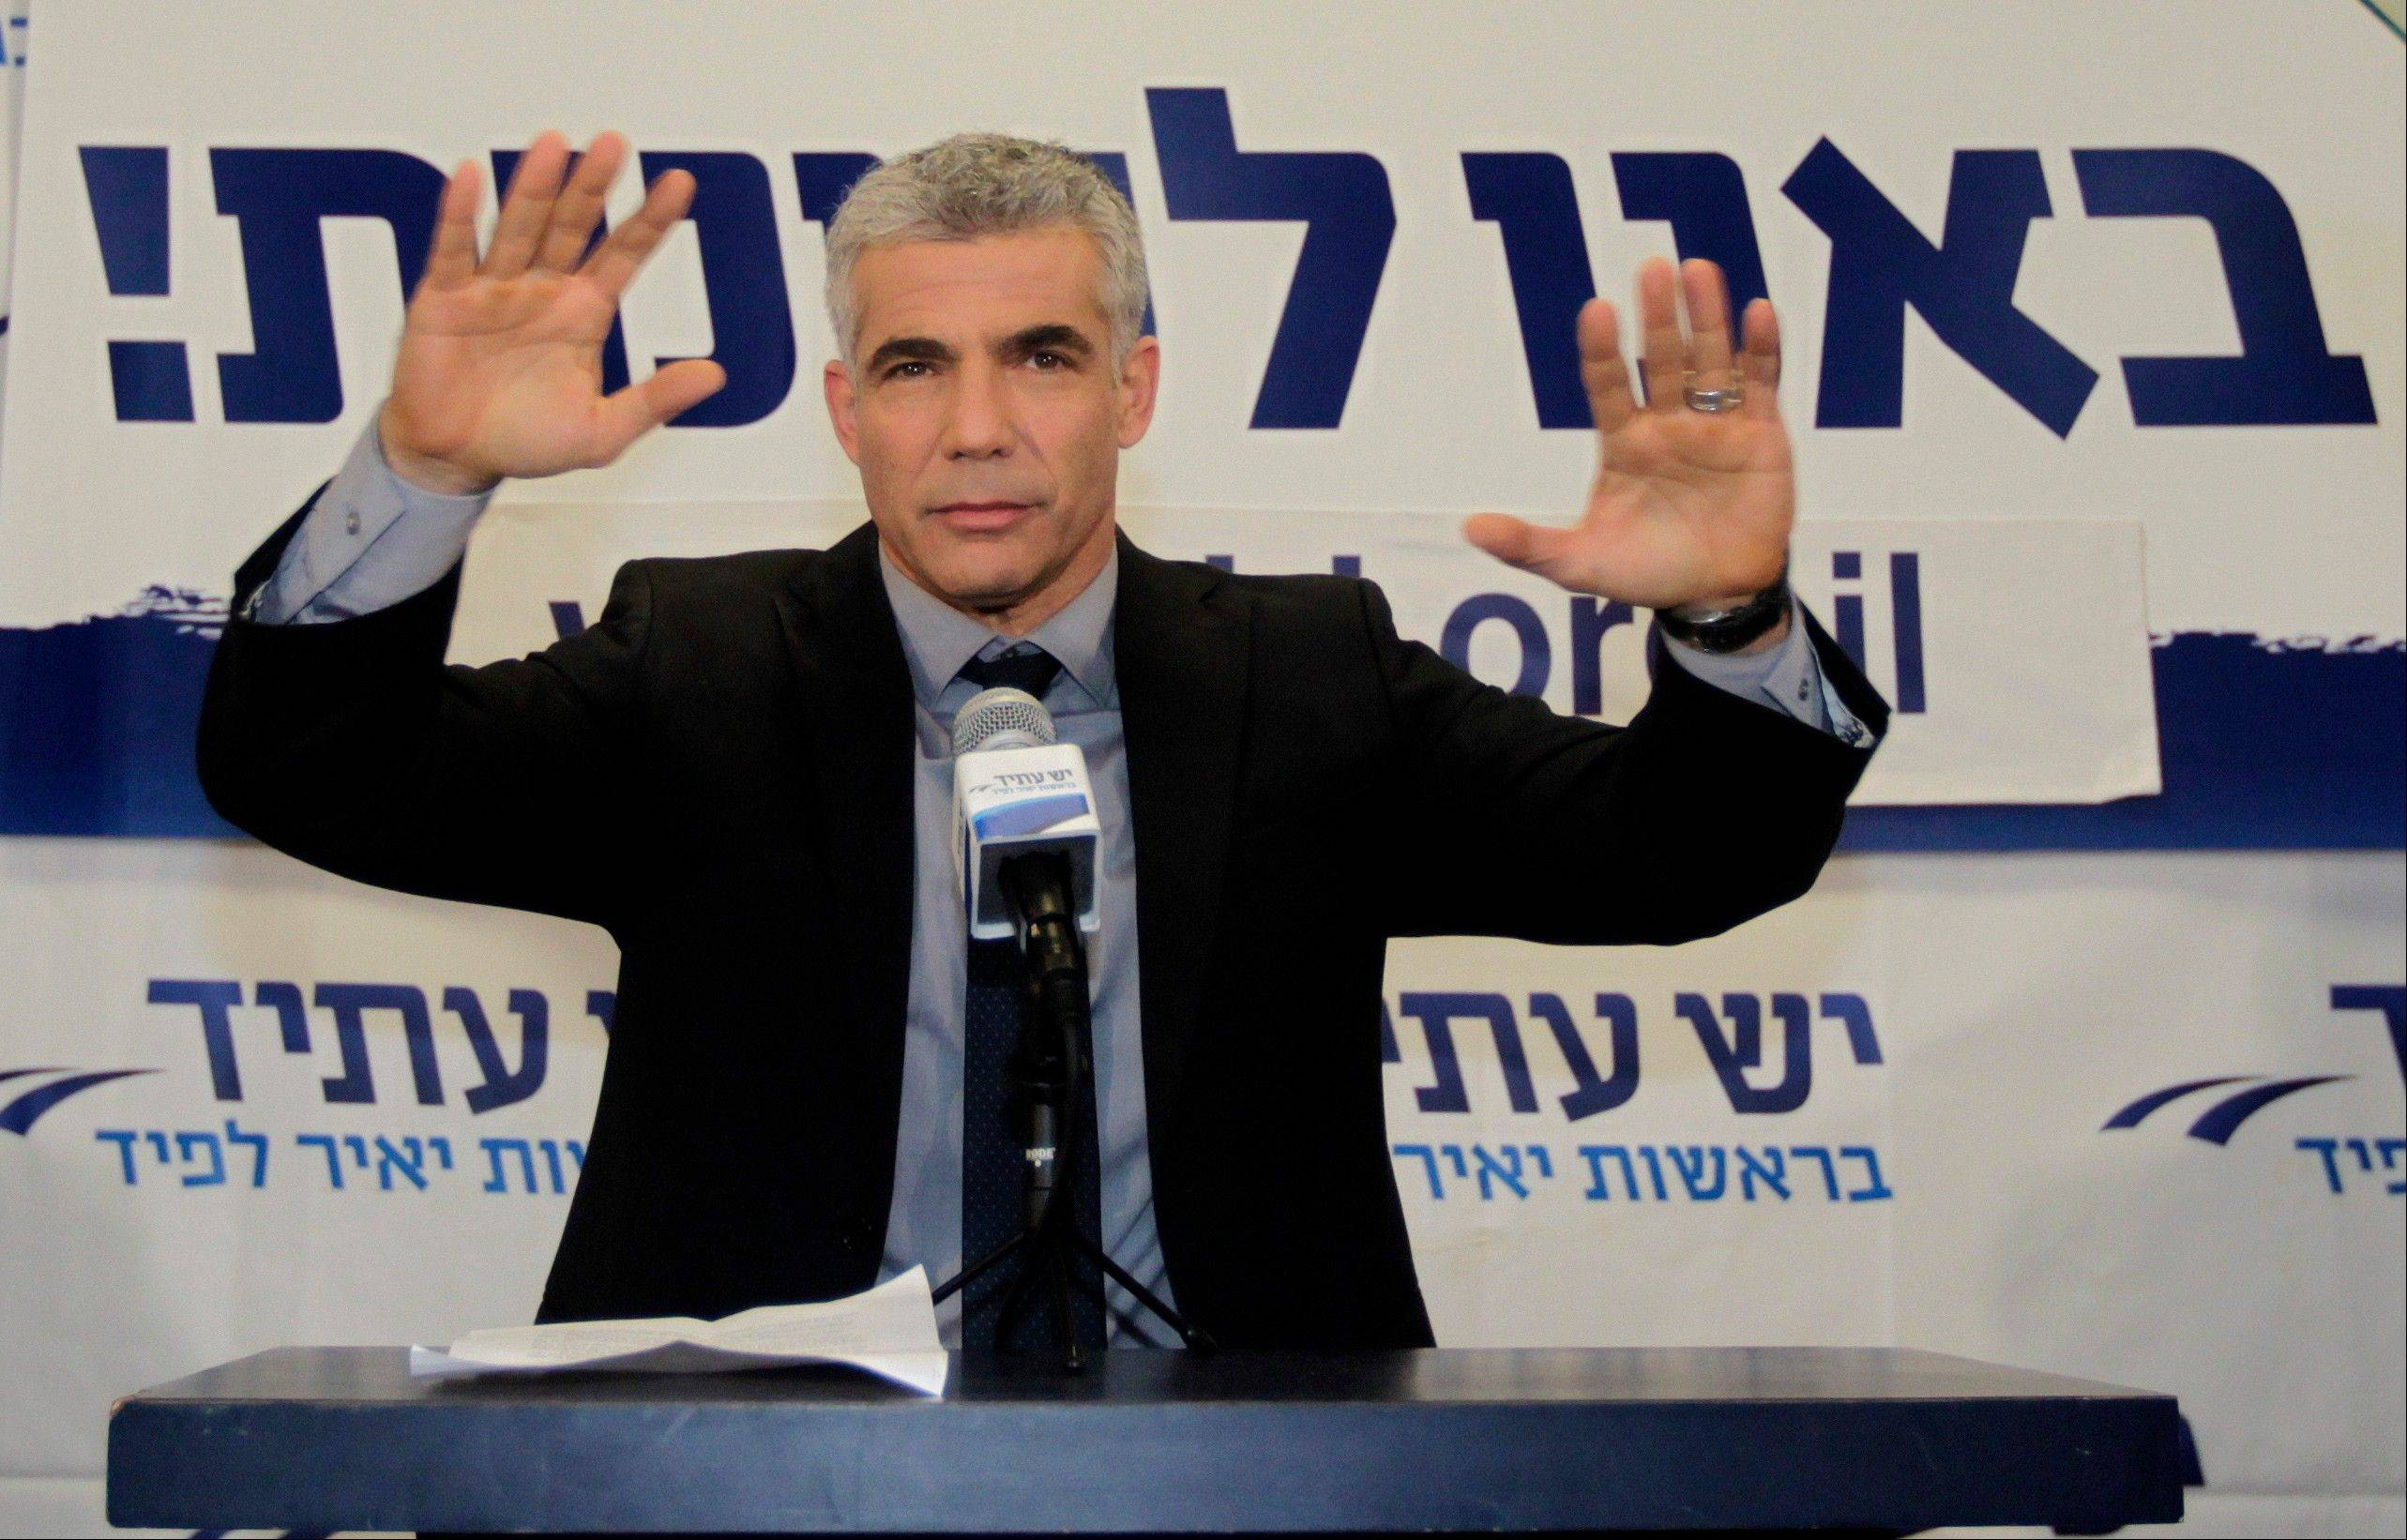 It appears Prime Minister Benjamin Netanyahu's future in office may depend on newcomer Yair Lapid, above. Lapid's Yesh Atid, or There is a Future, emerged as the second-largest party in Israel's parliament after the prime minister's bloc, giving the 49-year-old former journalist unexpectedly strong leverage in upcoming coalition negotiations.